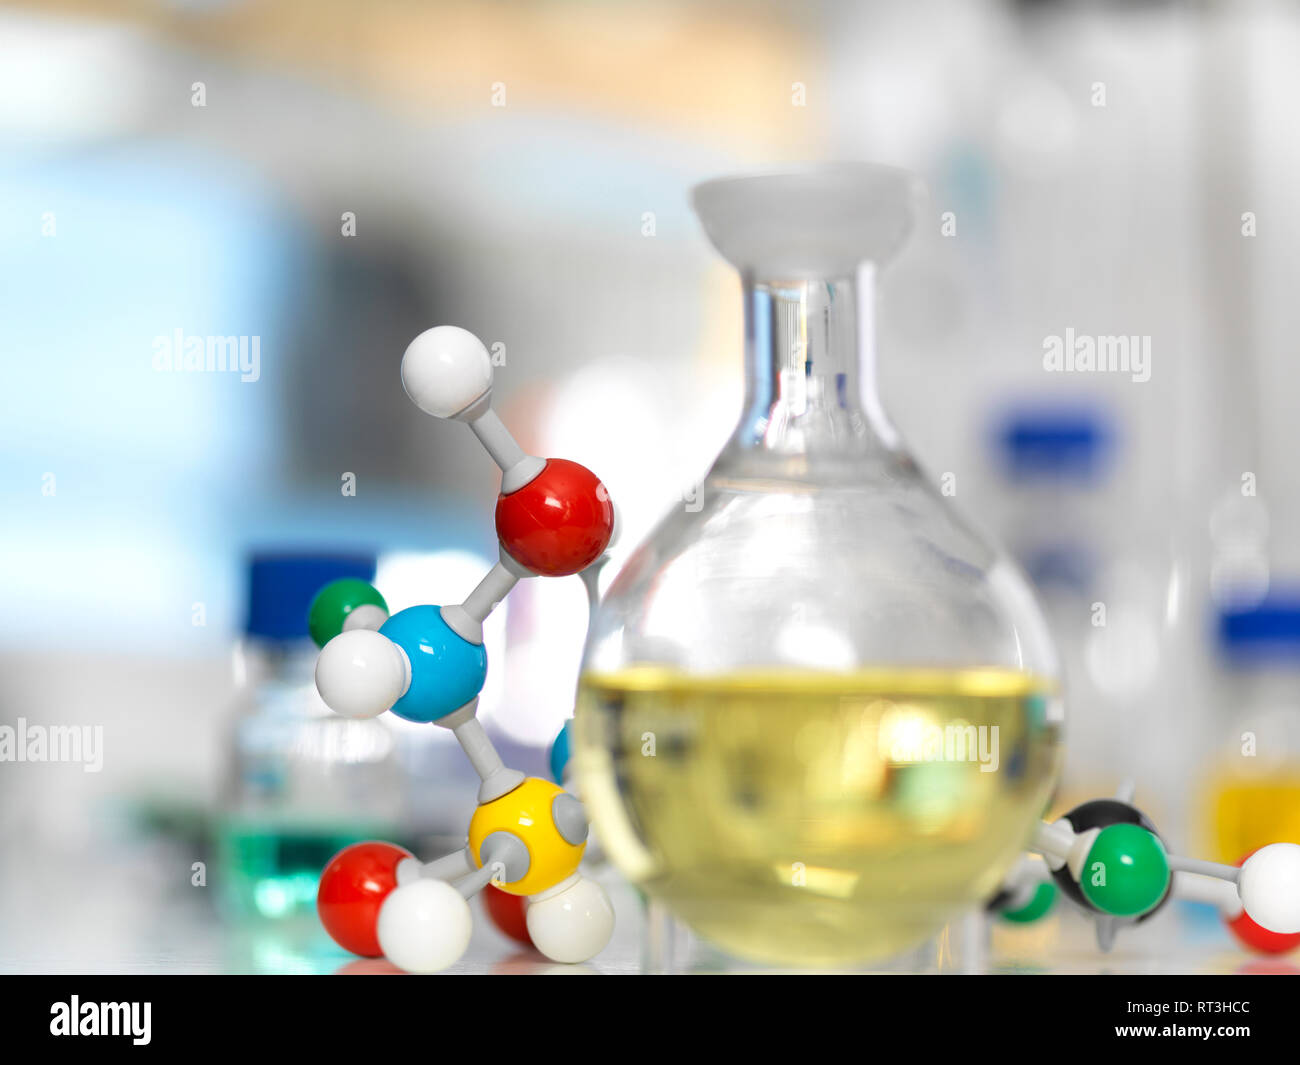 Flask containing a chemical formula next to molecule model - Stock Image